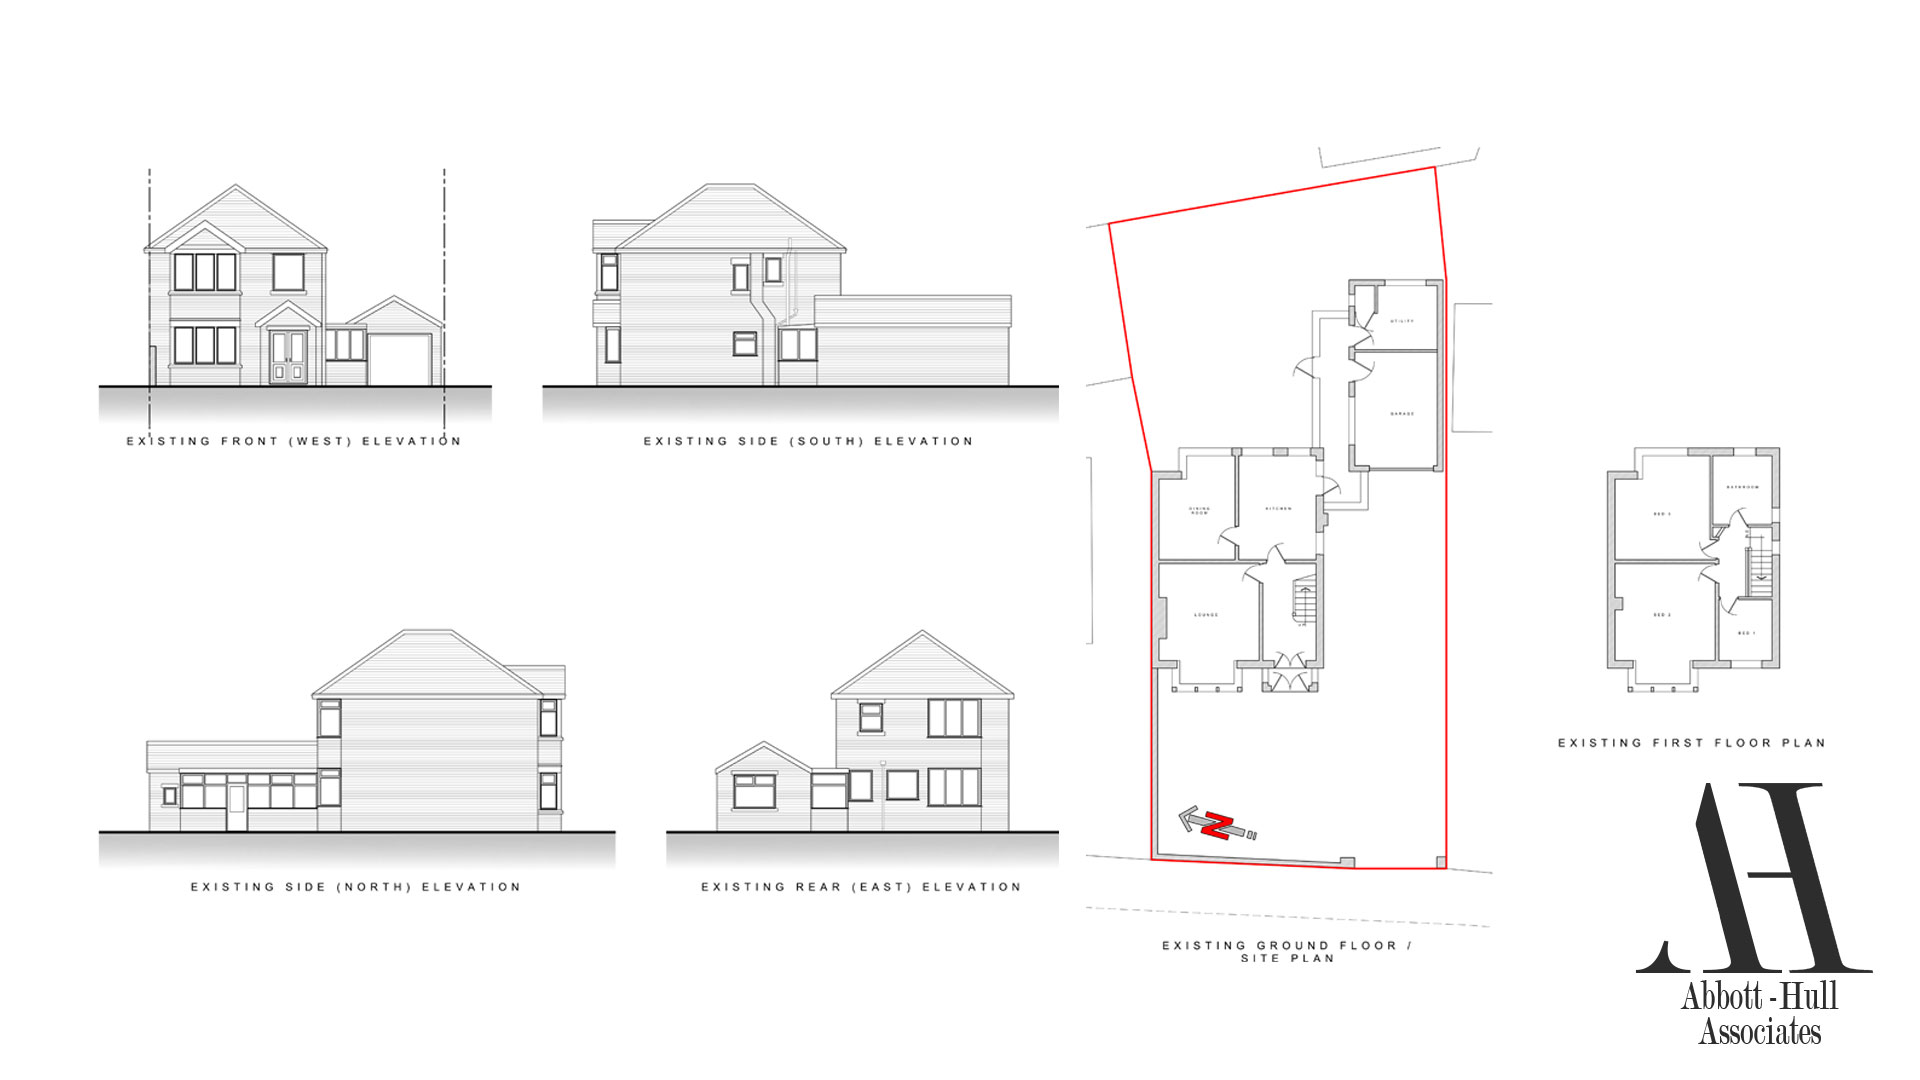 Marsh Road, Thornton-Cleveleys, House Extension - Existing Plans